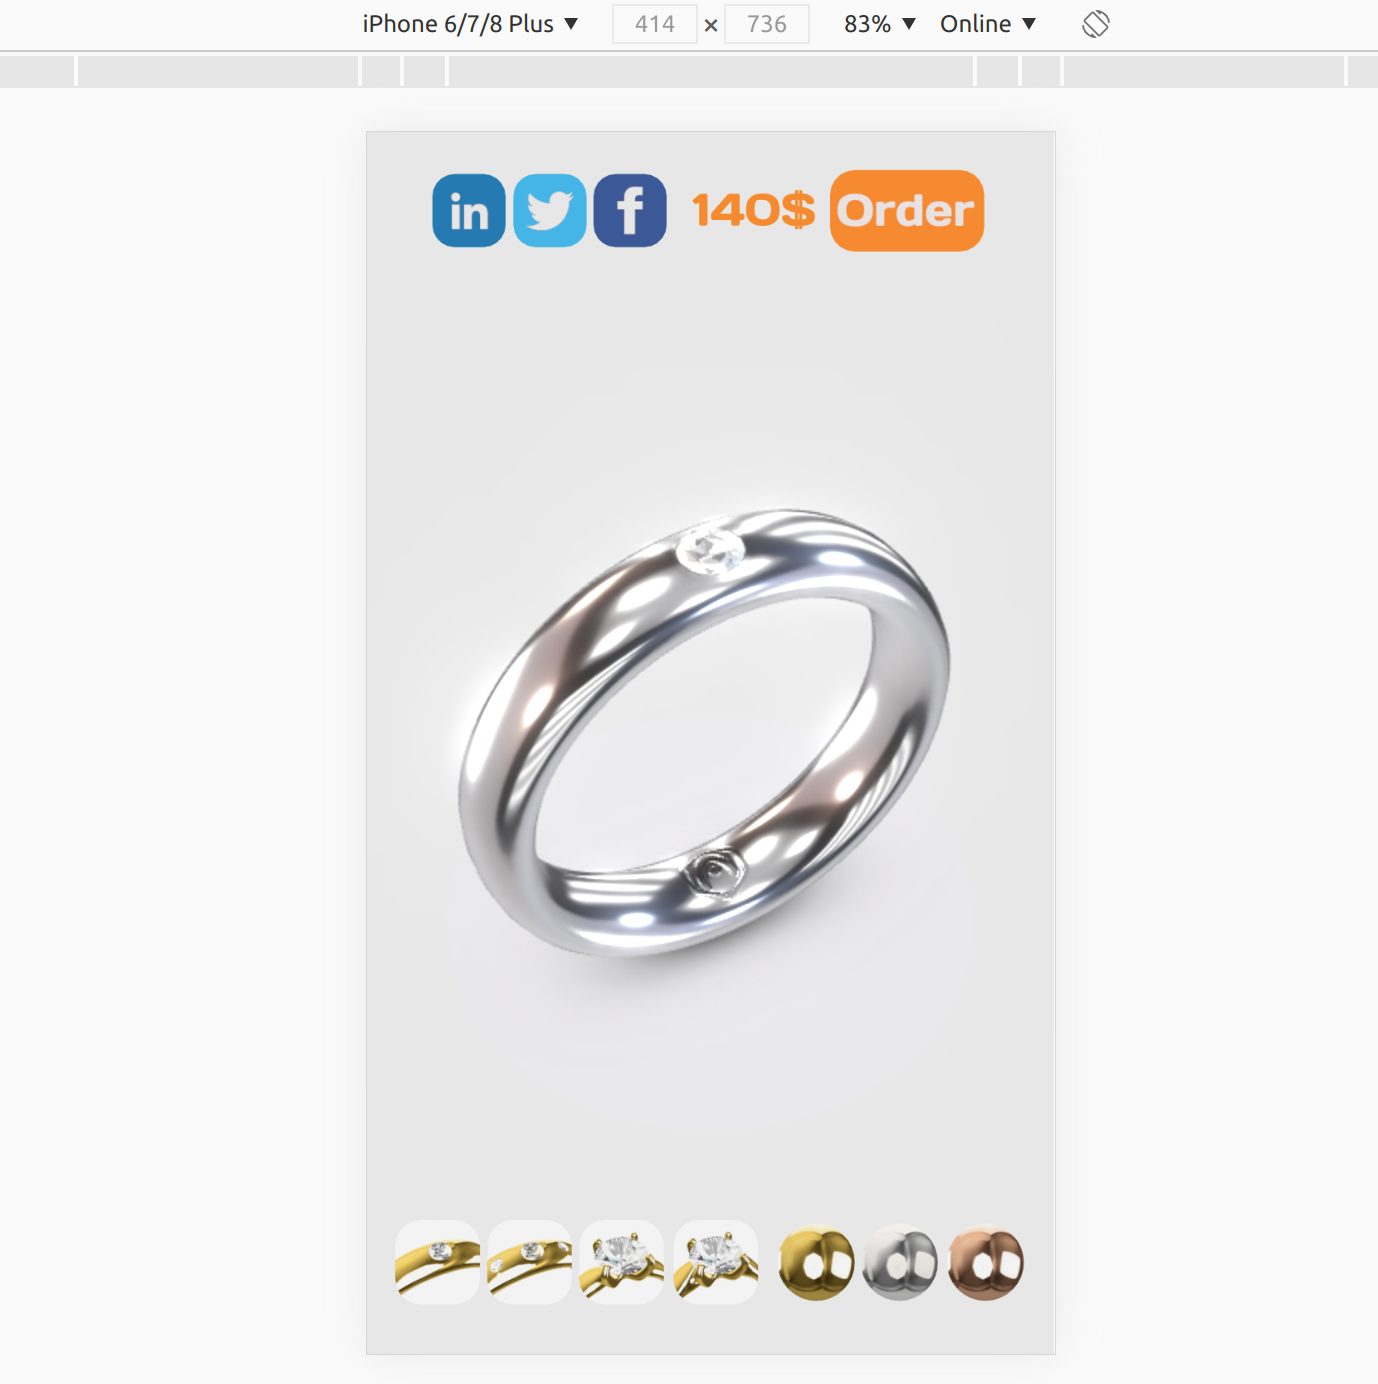 Ring demo showcases 3D user interfaces